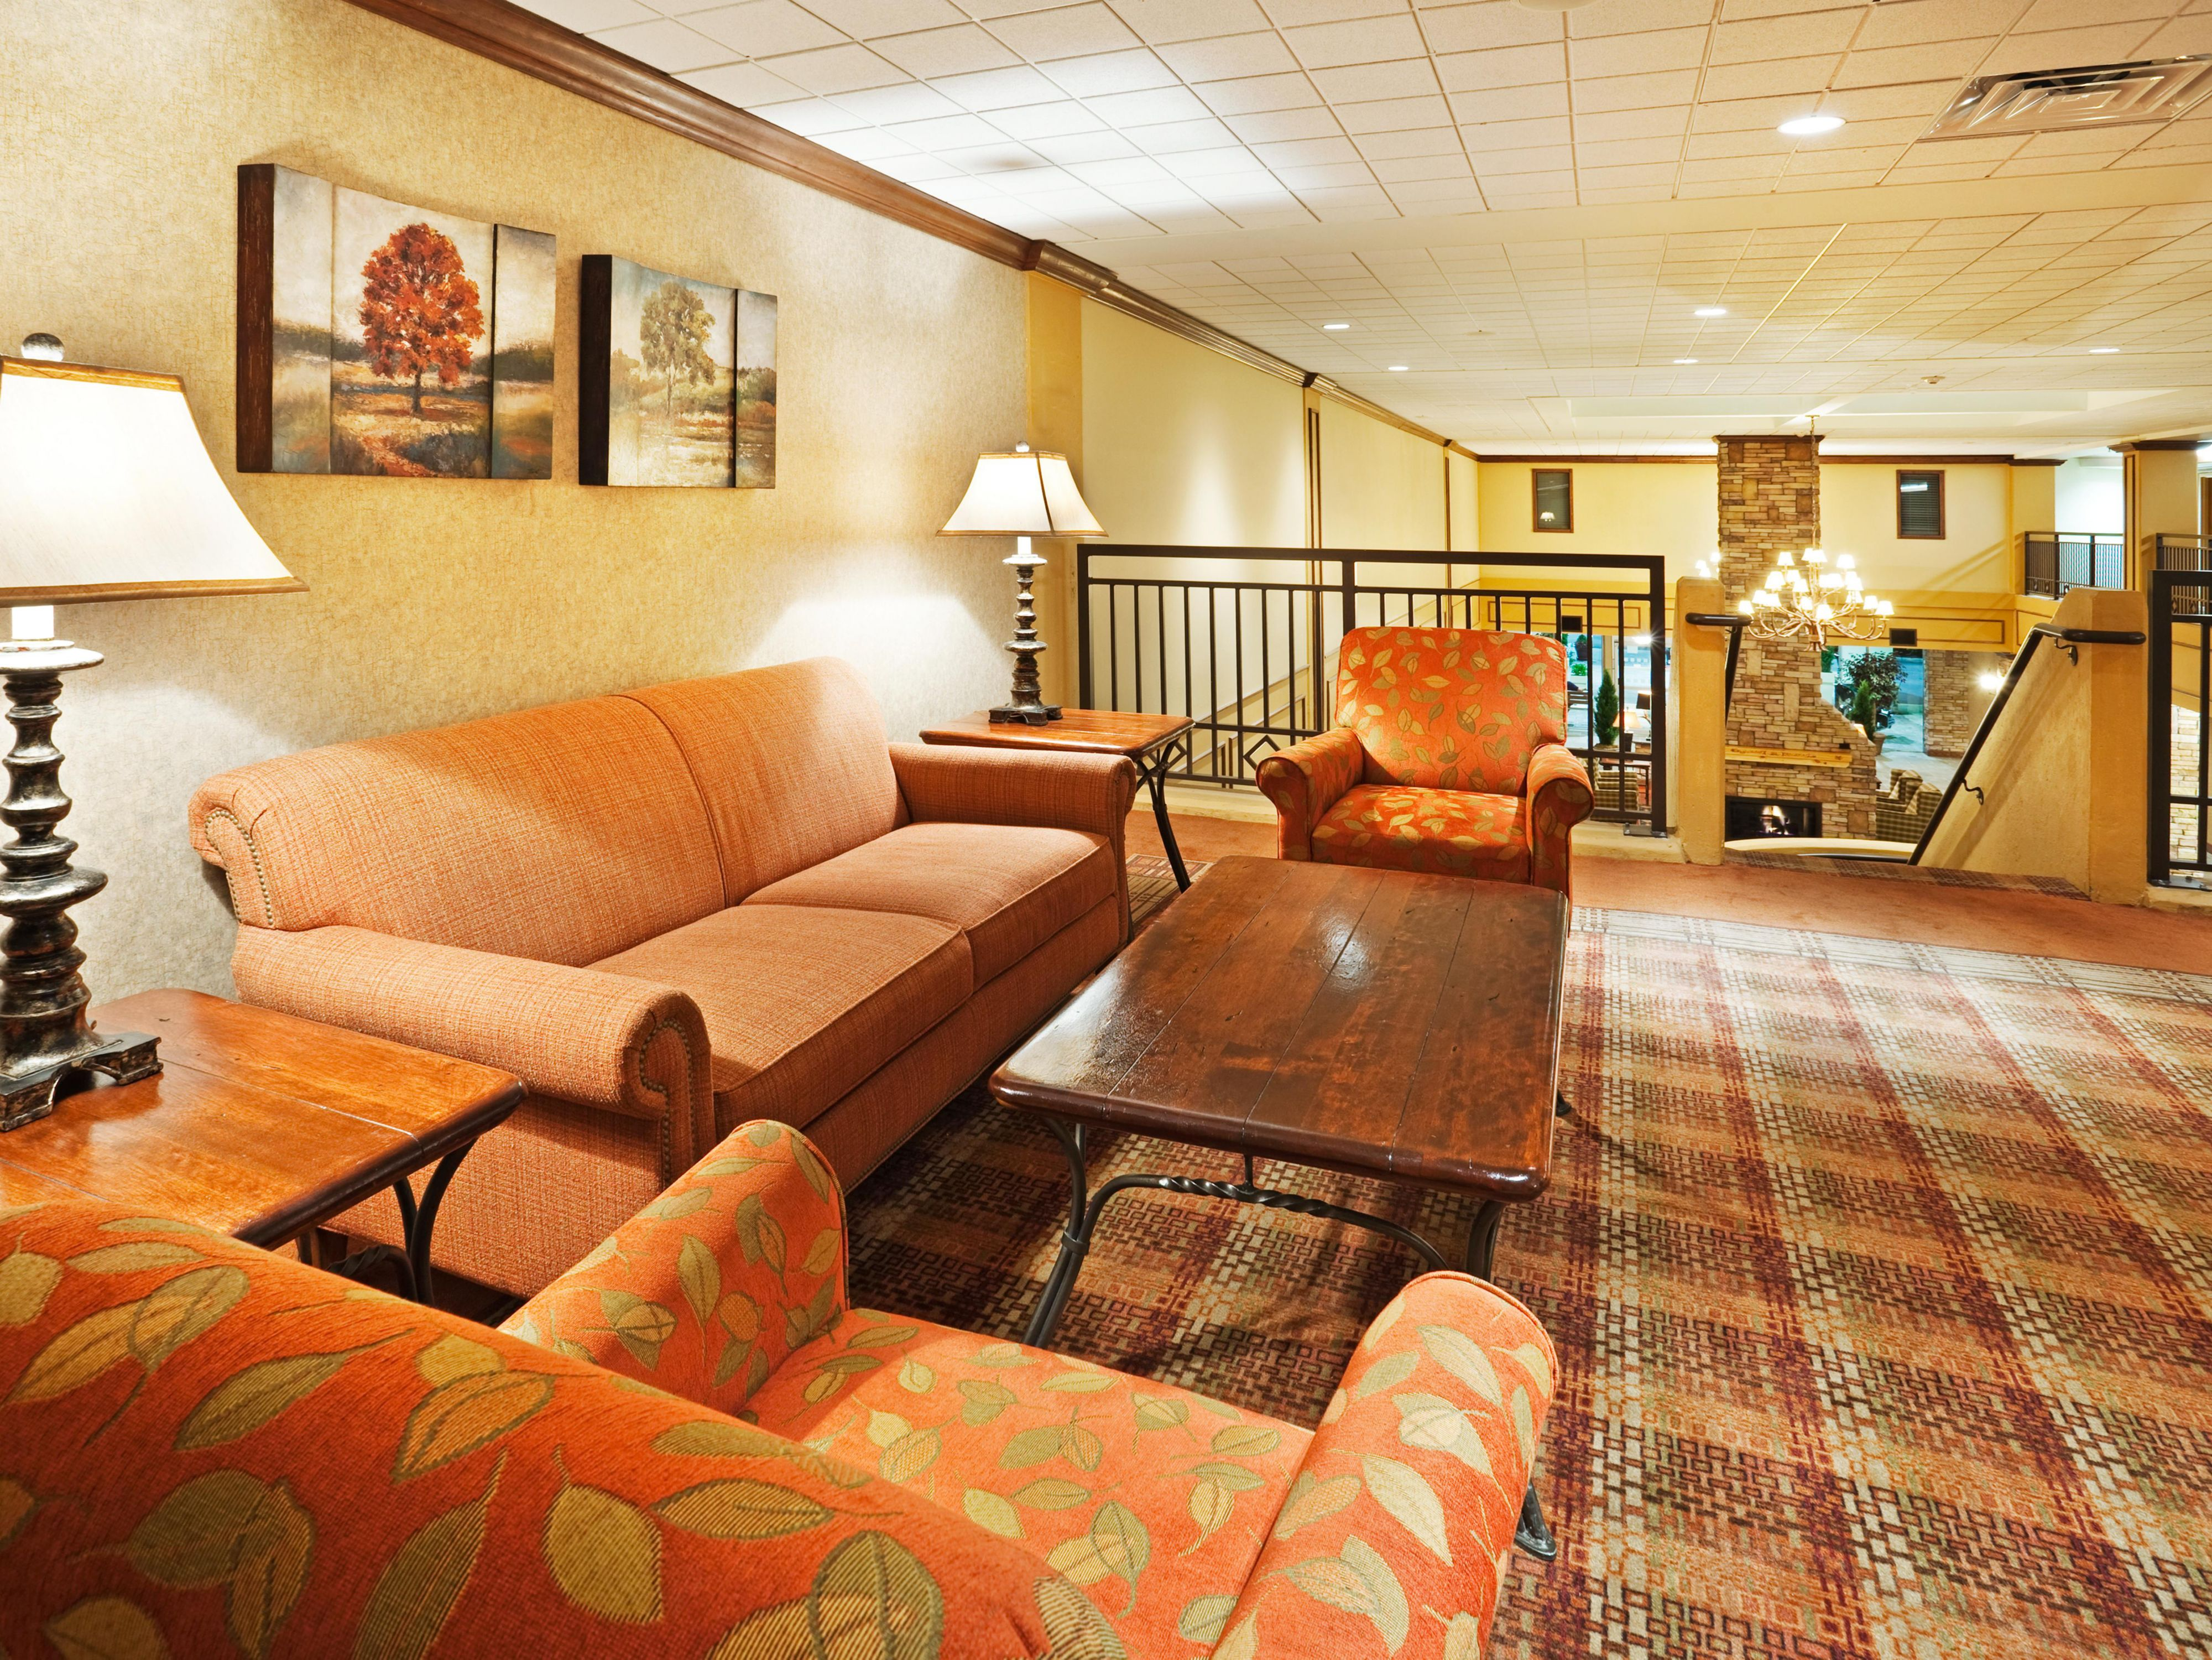 Relax or visit with friends in one of many common areas